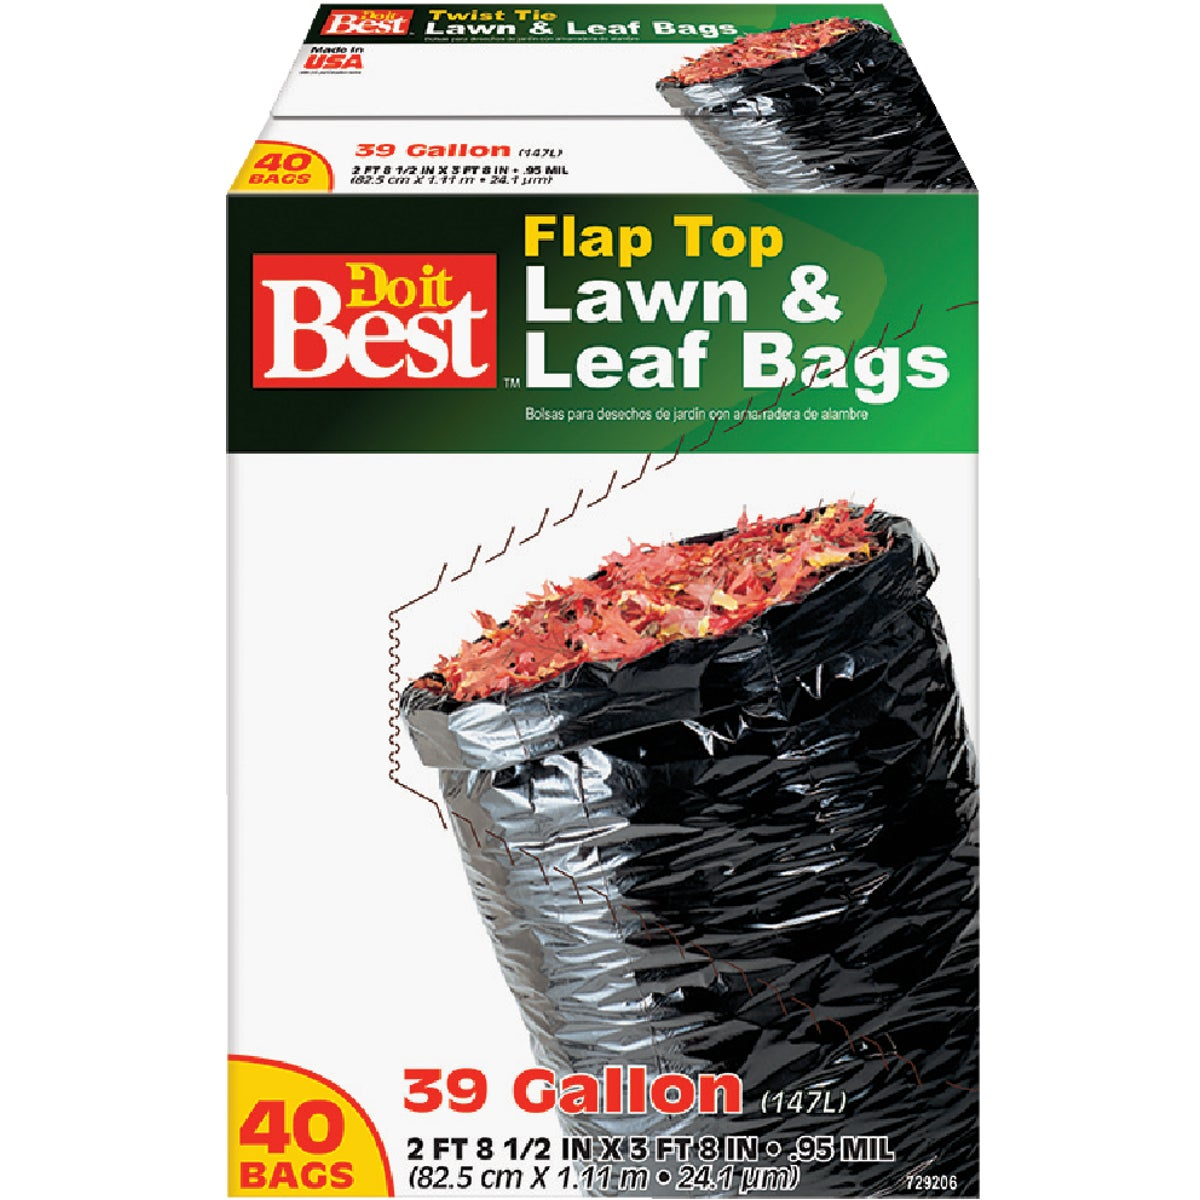 39GAL LAWN & LEAF BAG - 729206 by Presto Products